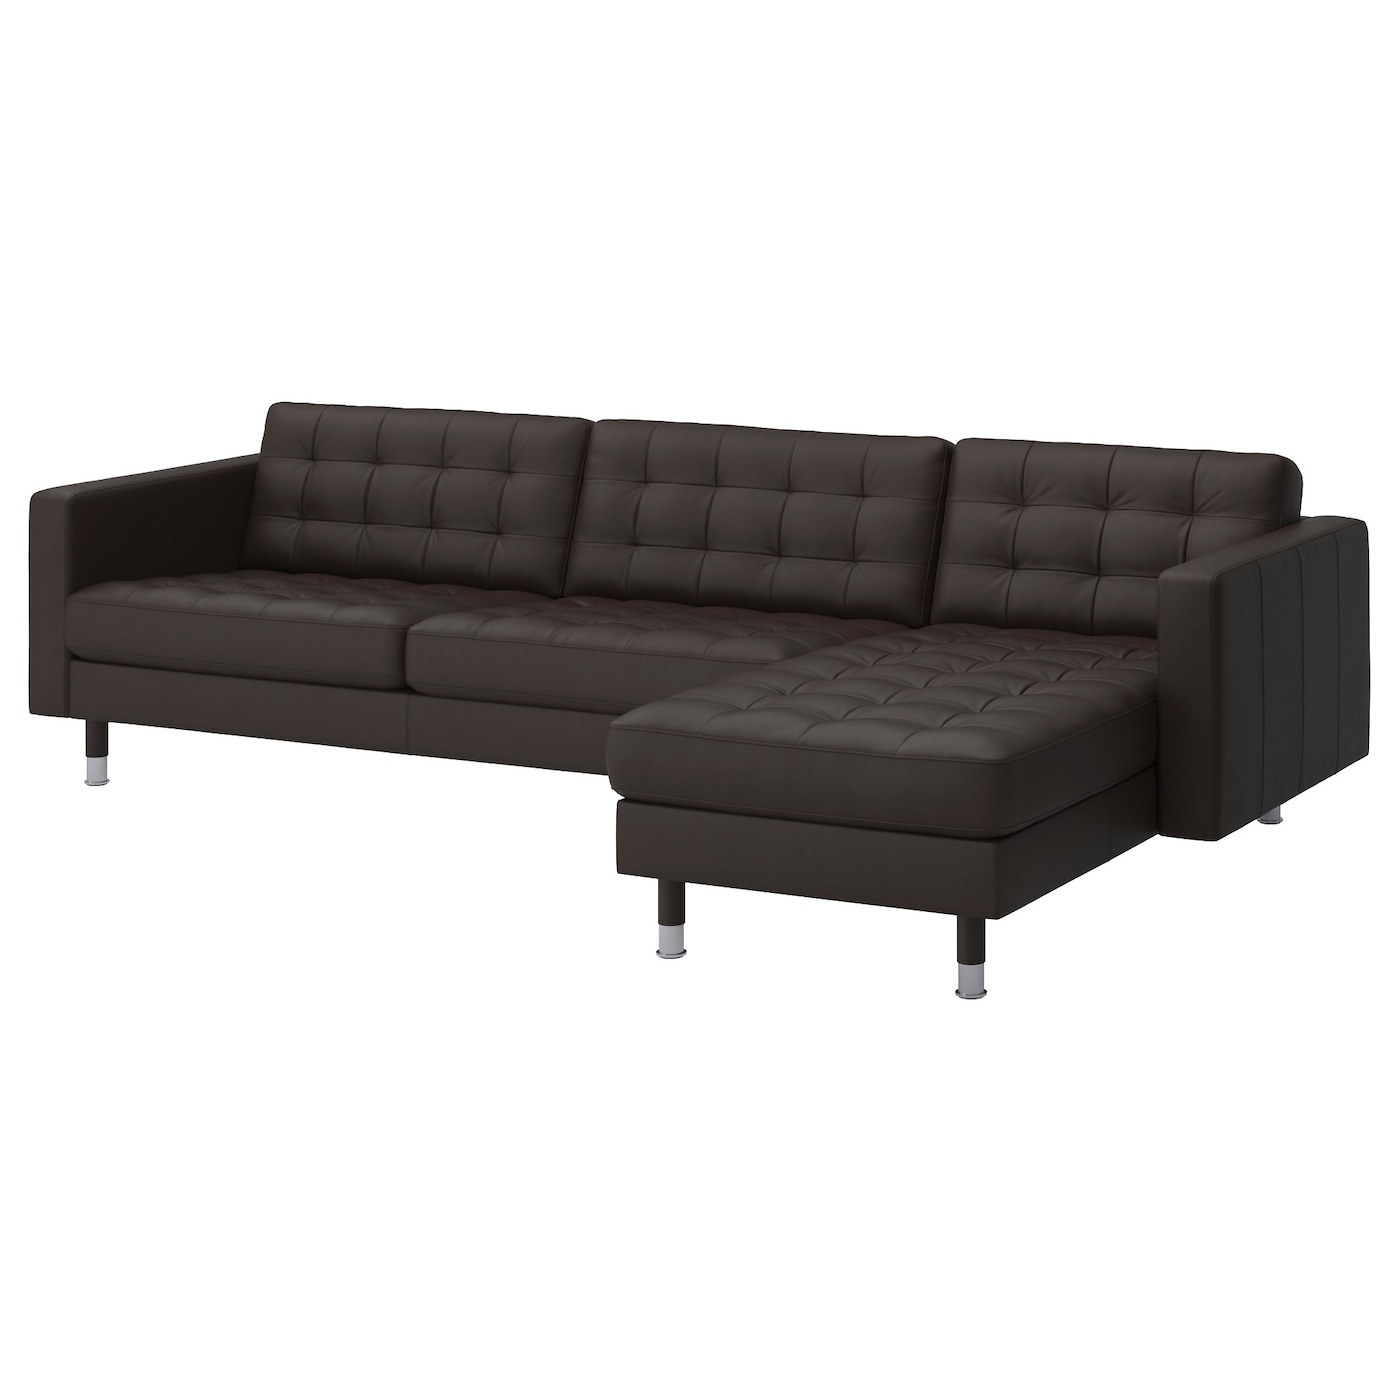 IKEA LANDSKRONA three-seat sofa and chaise longue